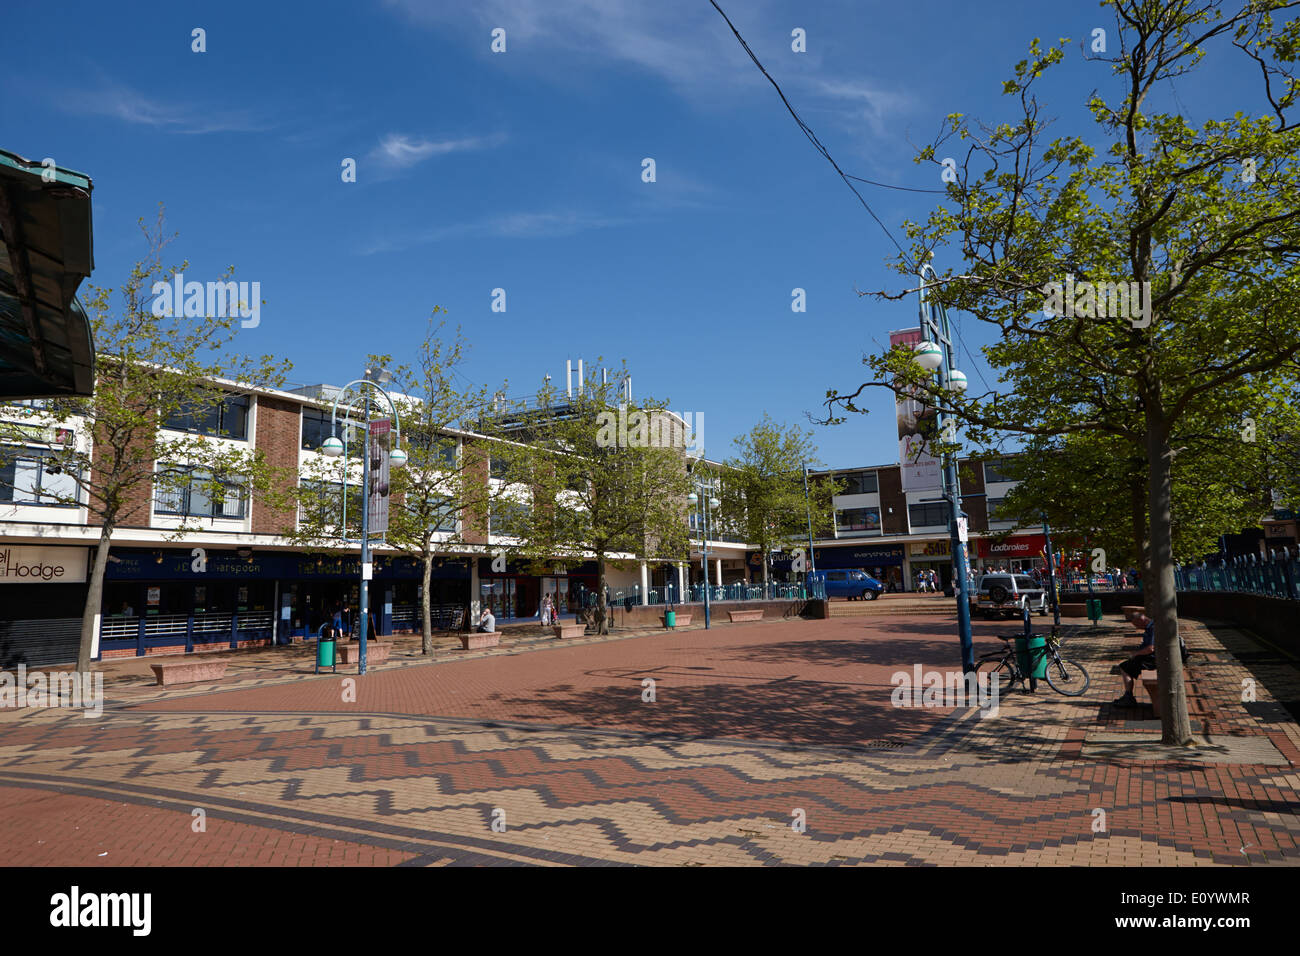 Newtown Gardens Kirkby town centre 1960s town planning Merseyside England UK - Stock Image